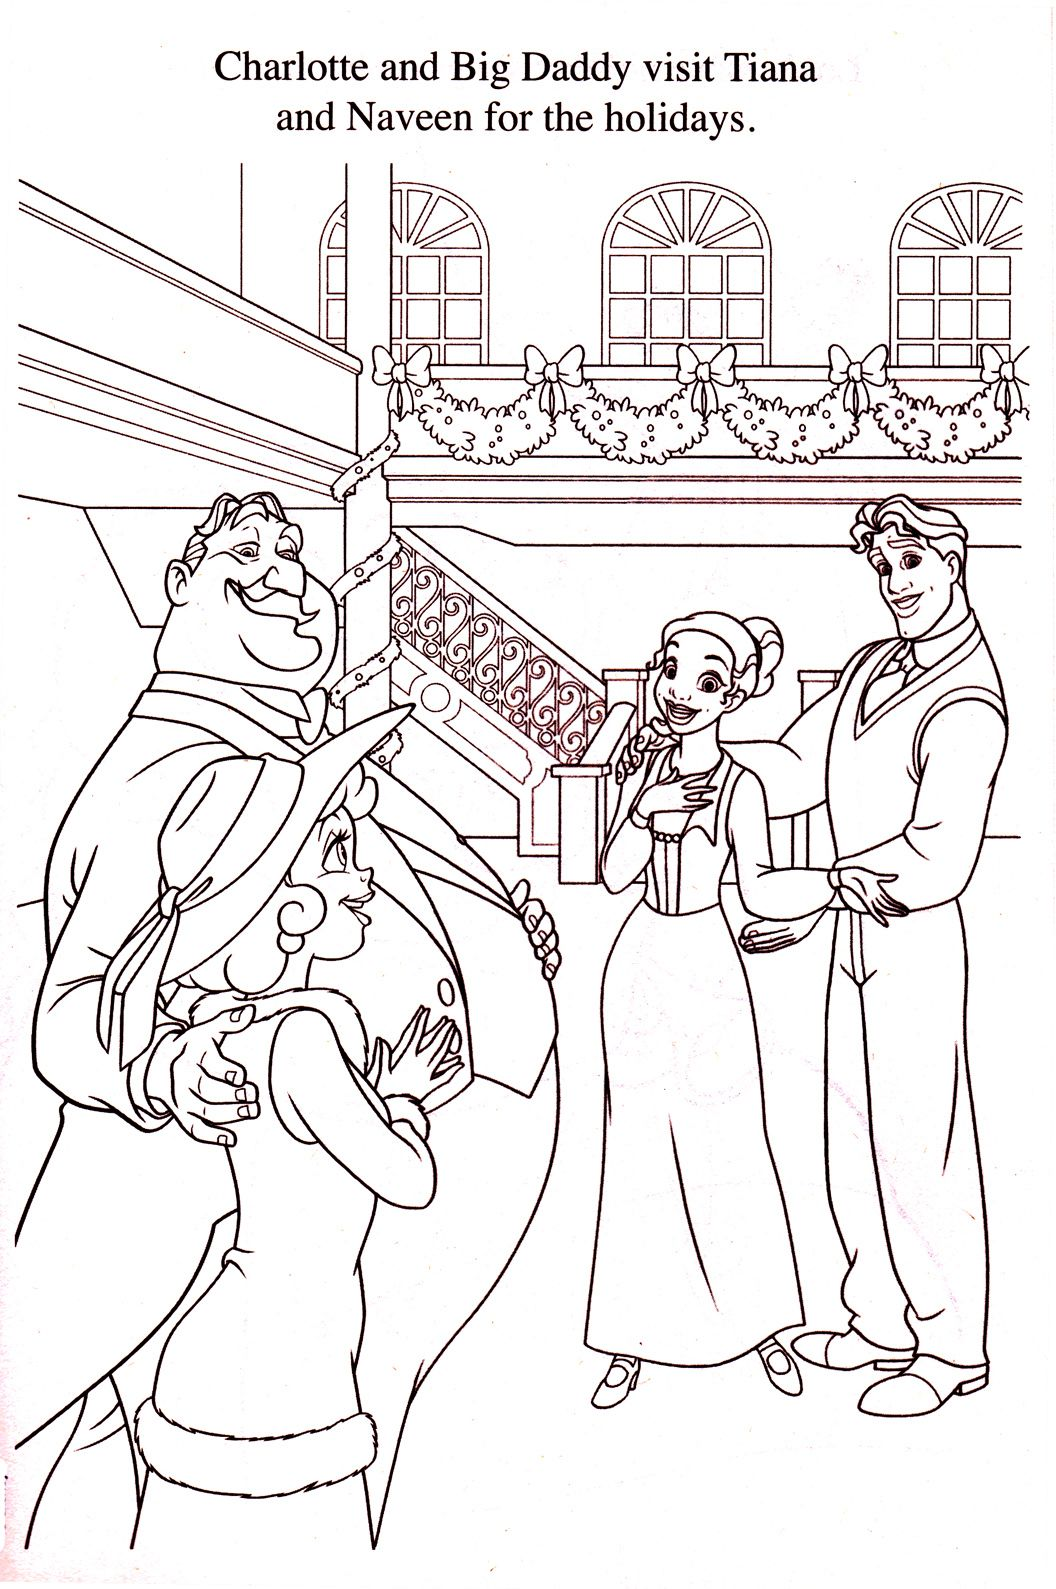 Princess and the Frog Christmas coloring page (Disney). | Coloring ...